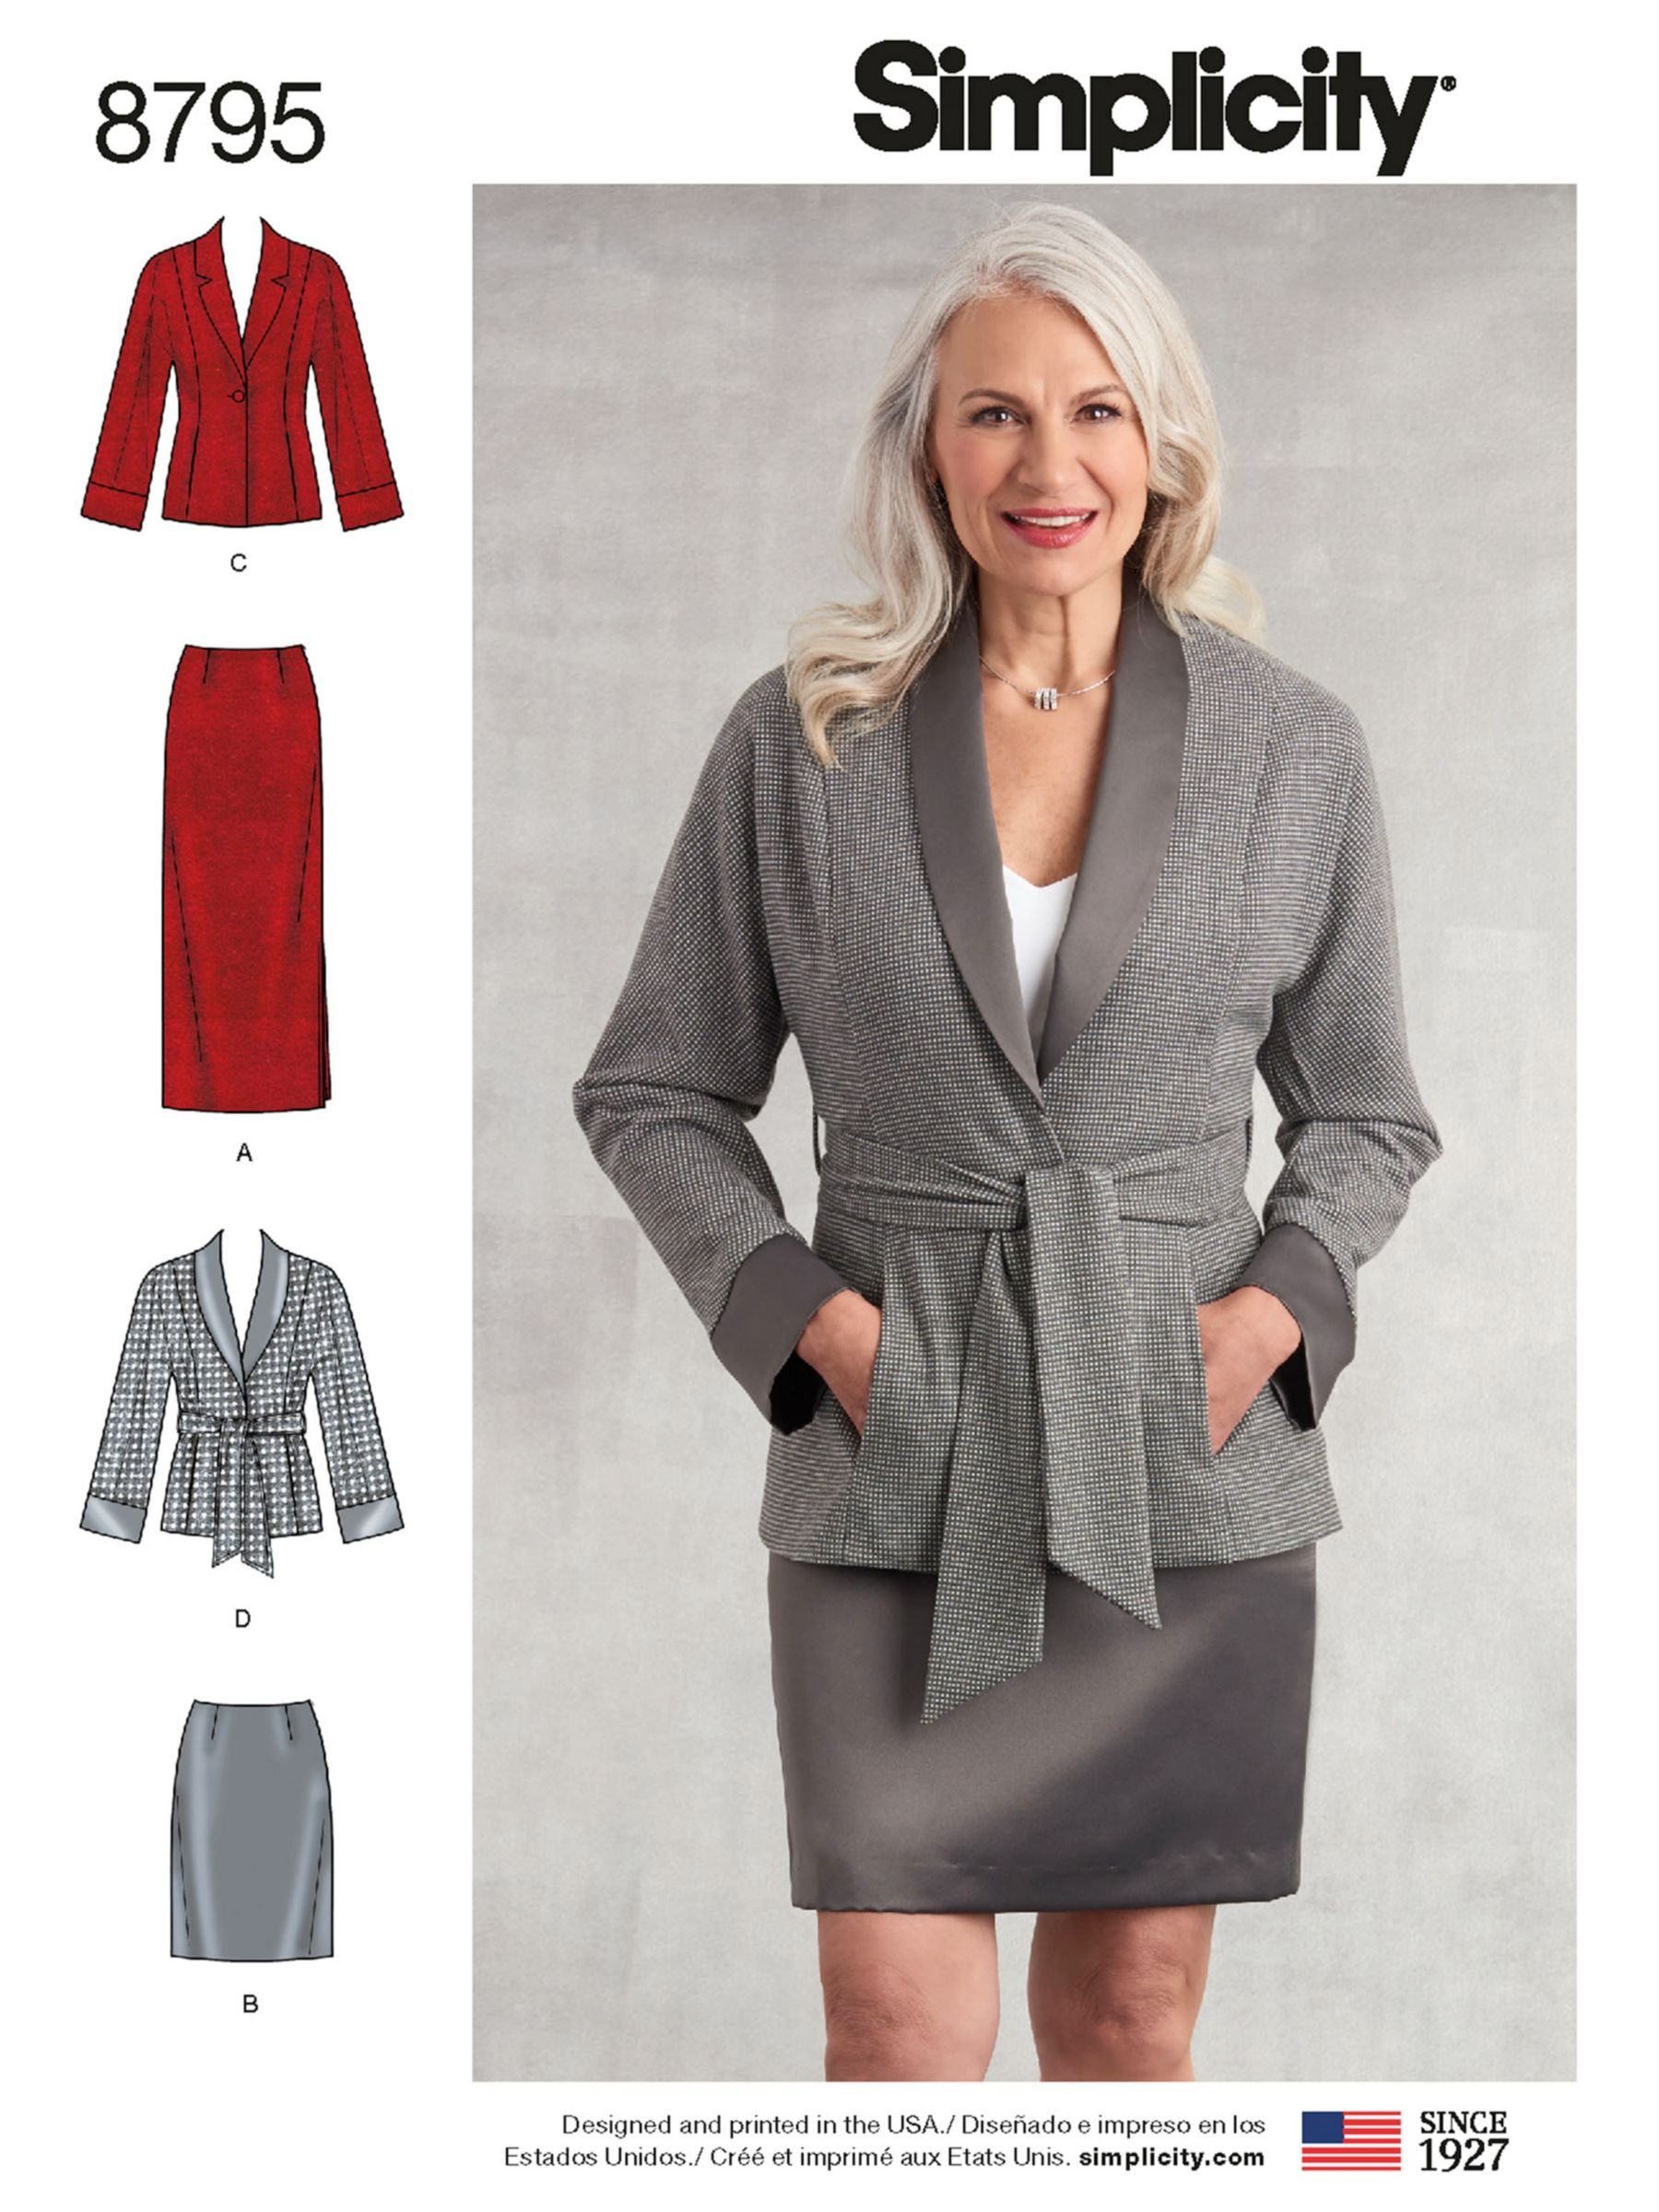 Simplicity Simplicity Women's Sportswear Jacket and Skirt Sewing Pattern, 8795